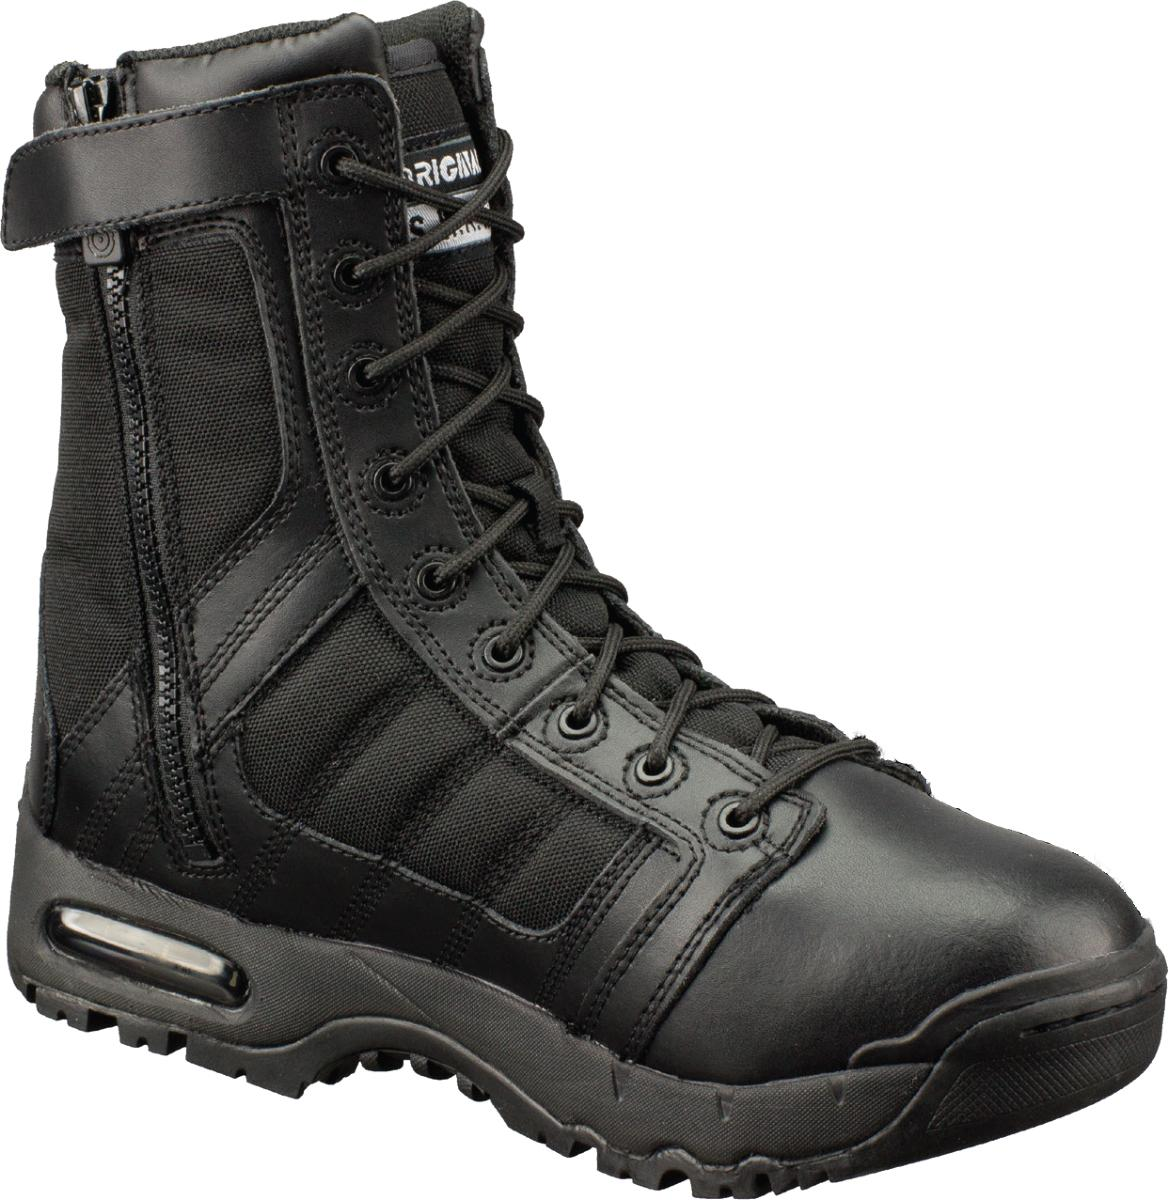 Original SWAT 1232 Black Tactical Boot with Side Zipper and Air Sole